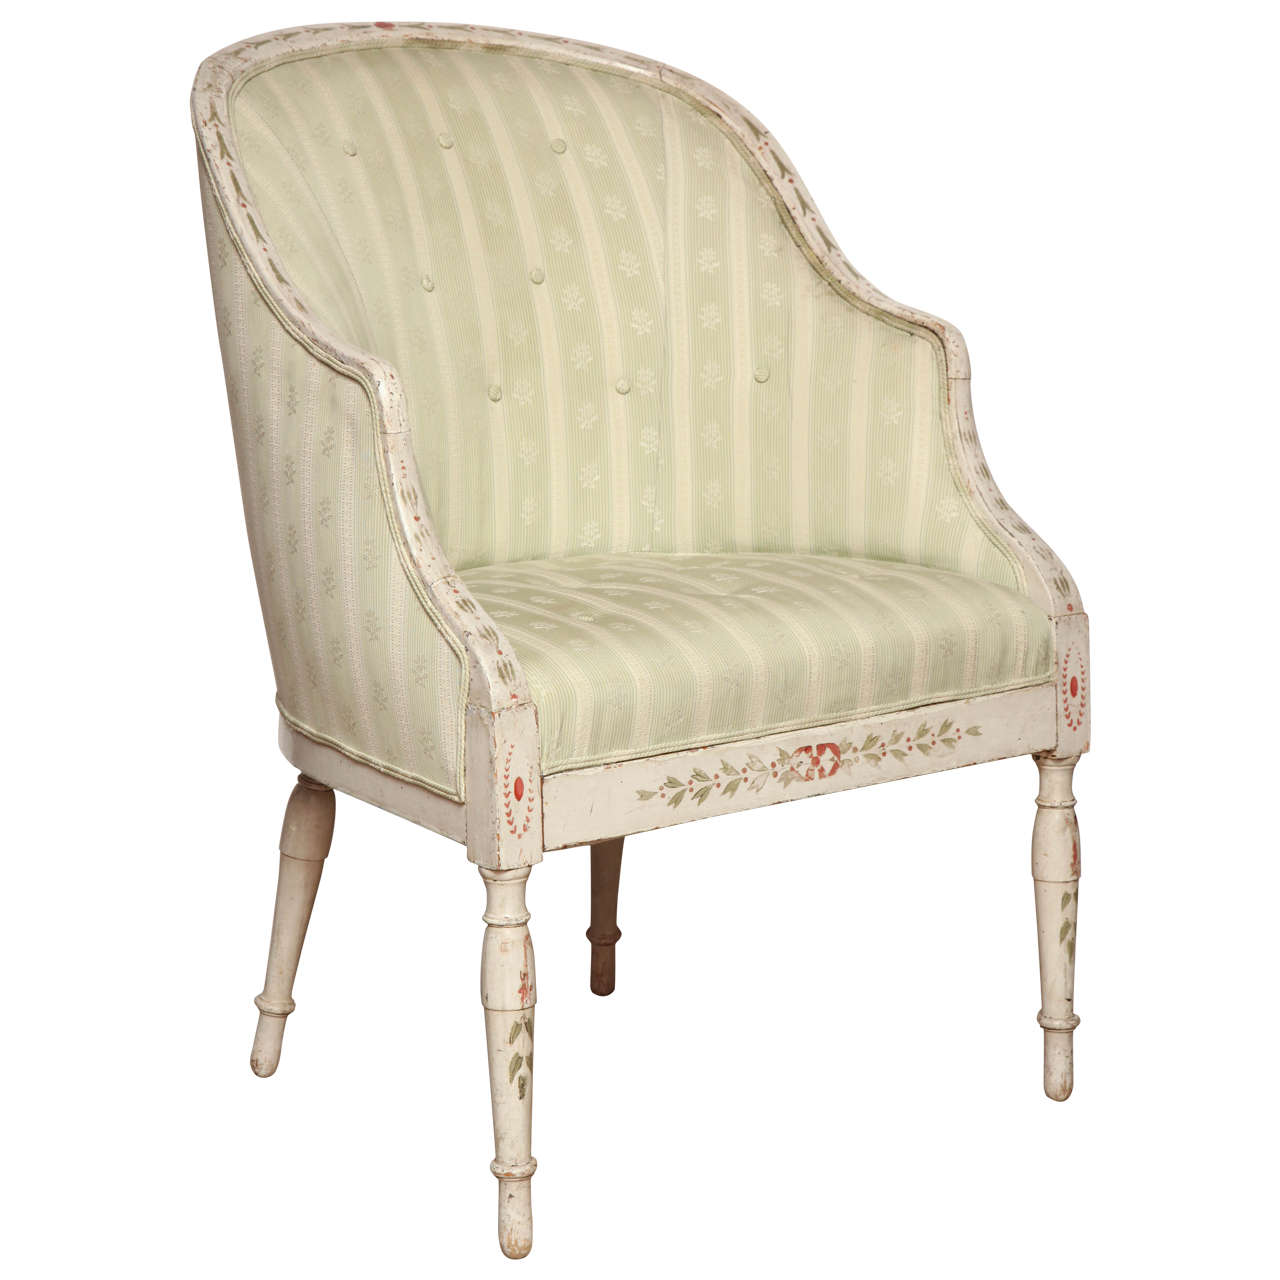 Hepplewhite Cream Painted Tub Chair For Sale At 1stdibs